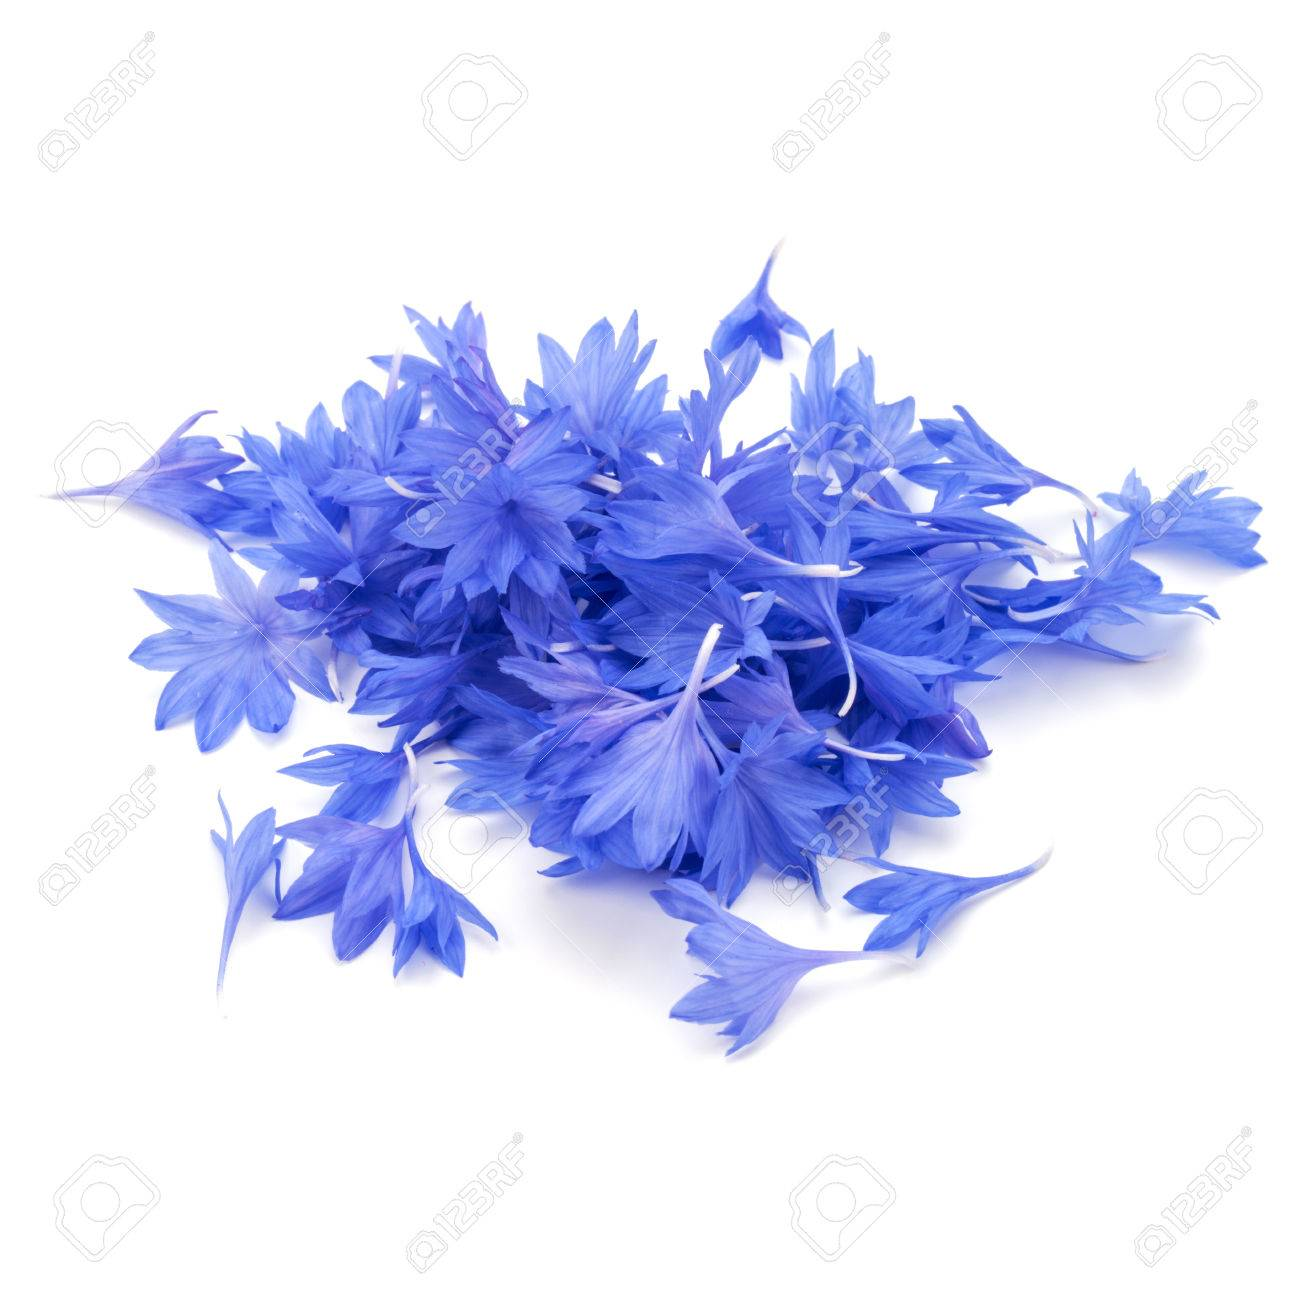 Blue cornflower herb or bachelor button flower petals isolated blue cornflower herb or bachelor button flower petals isolated on white background cutout stock photo izmirmasajfo